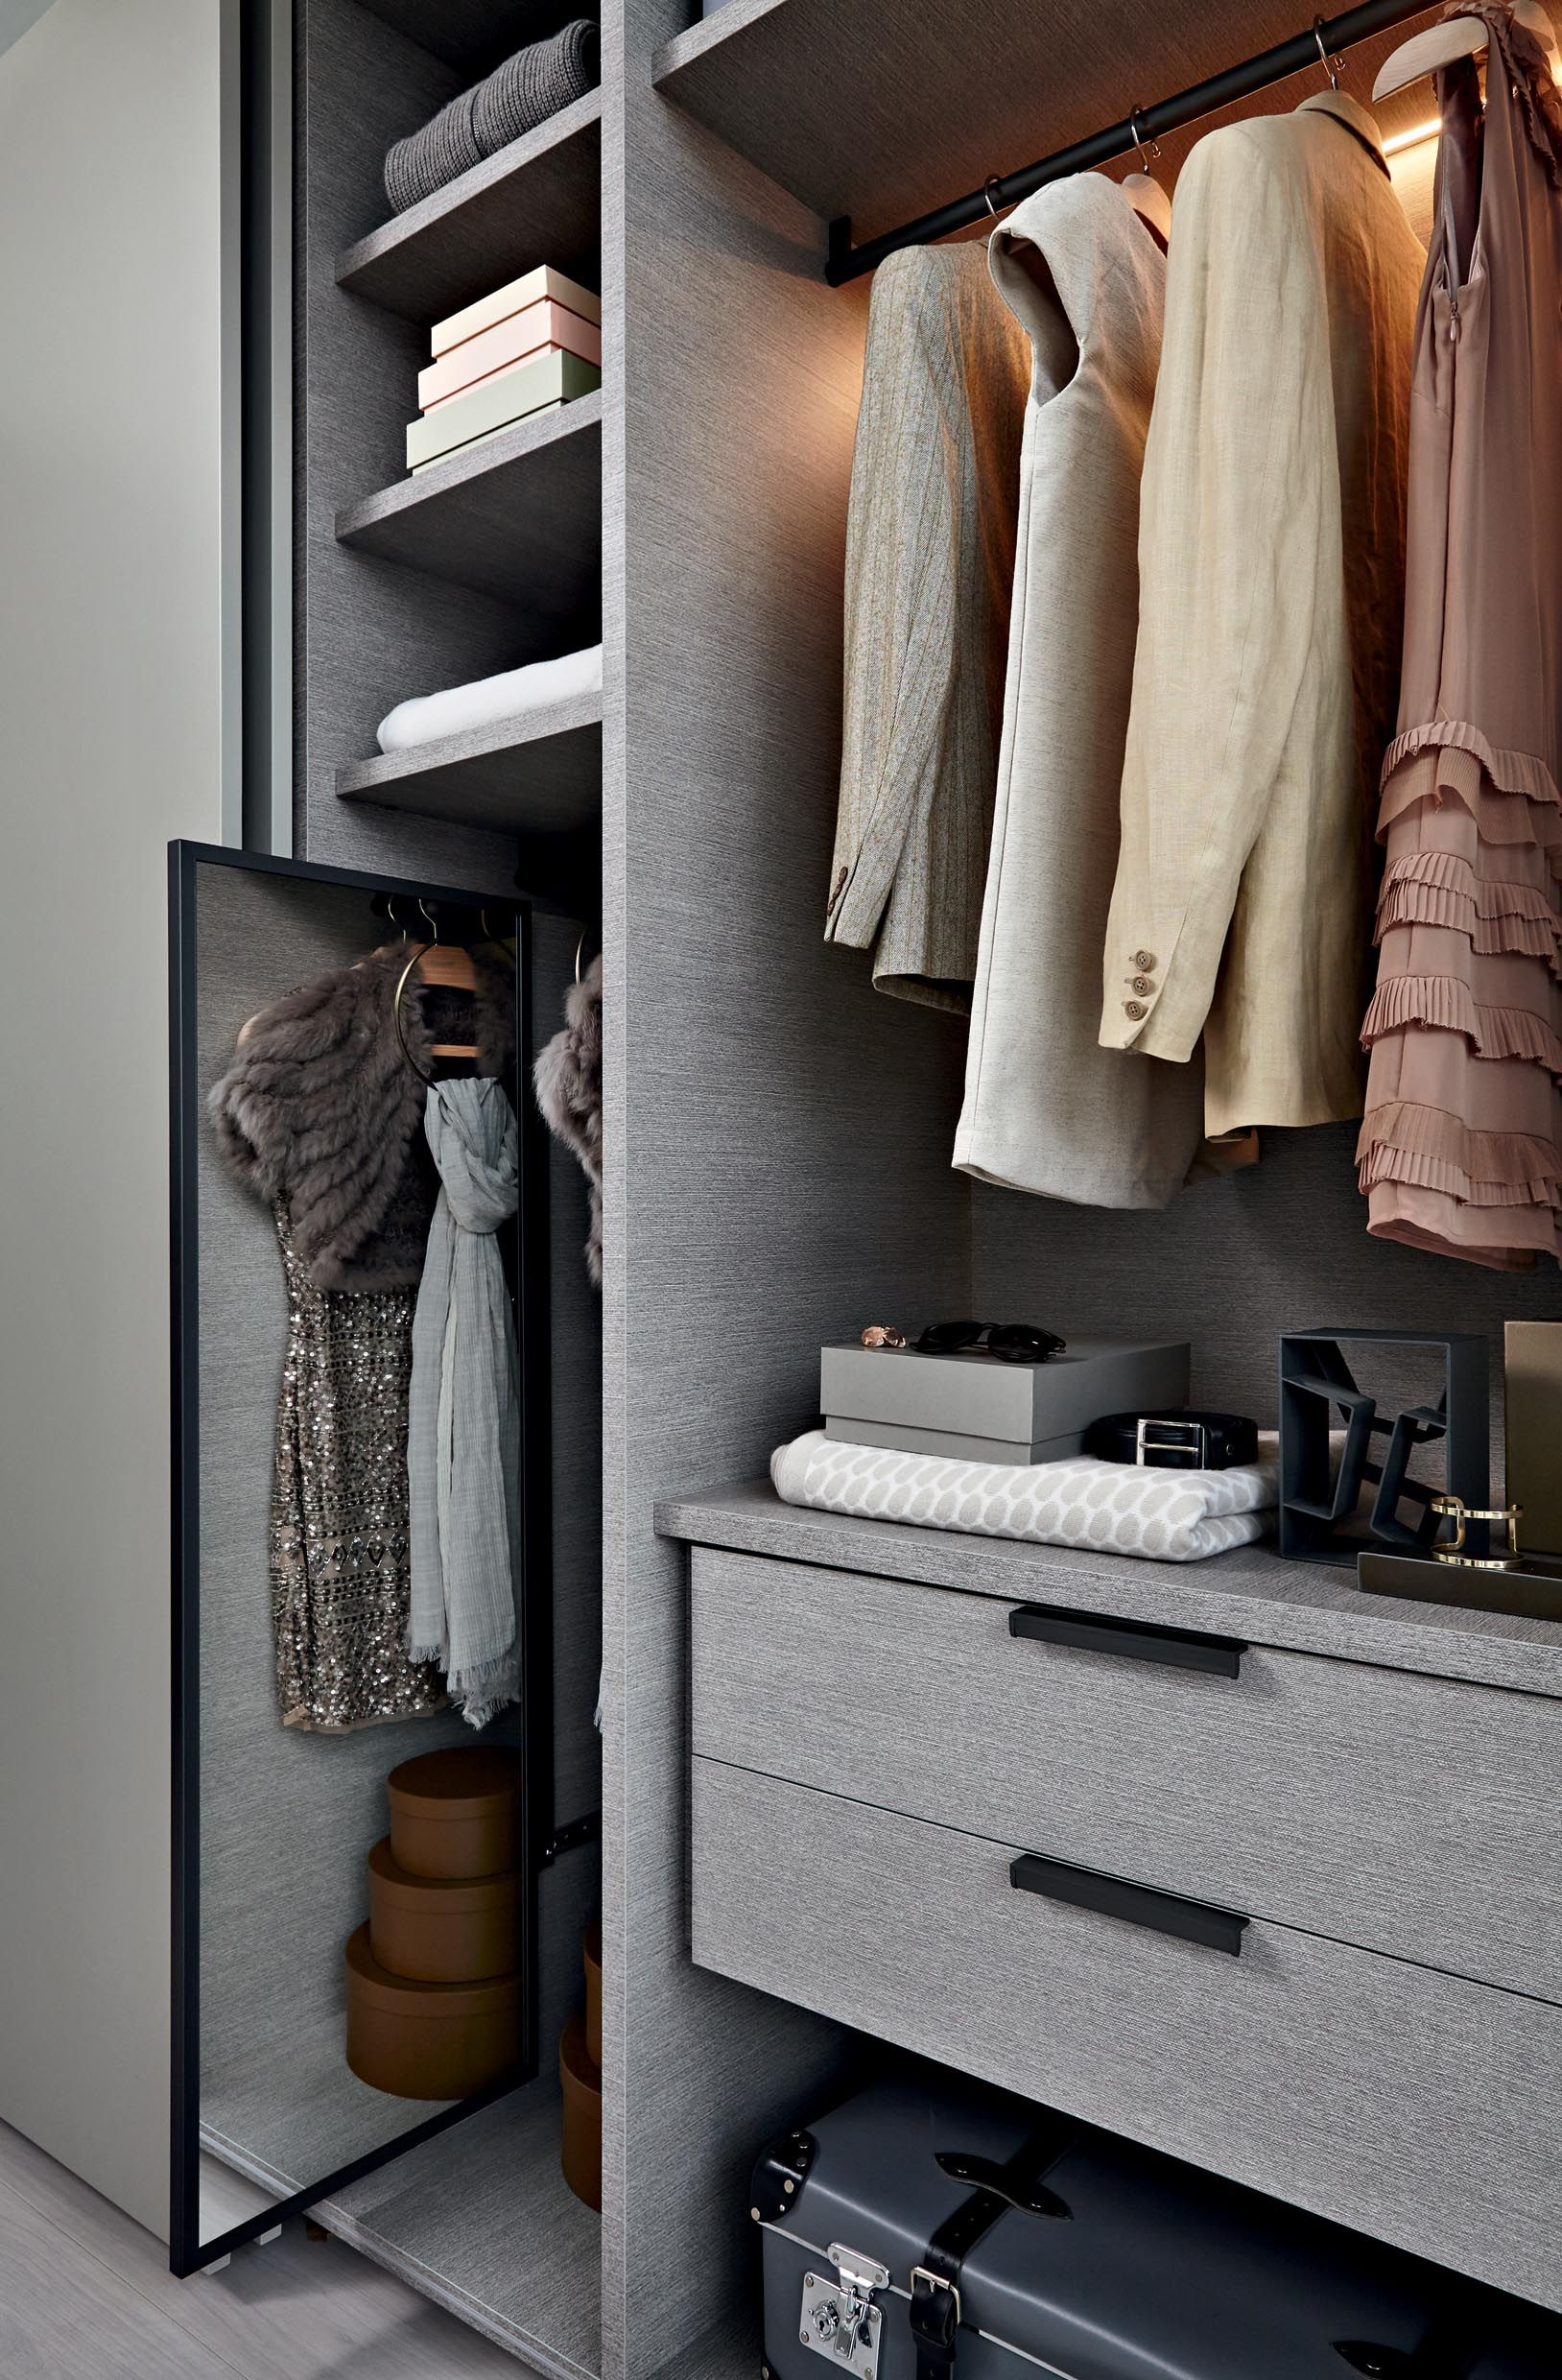 s in hgtvcom design best wardrobe walk room co rend for hanger girls noerdin ikea com closet bedroom pax dresser interior stunning rms wood the ideas young small with at bedroomet storage hd clothes corner photo wrdrobe gogirlgo golime